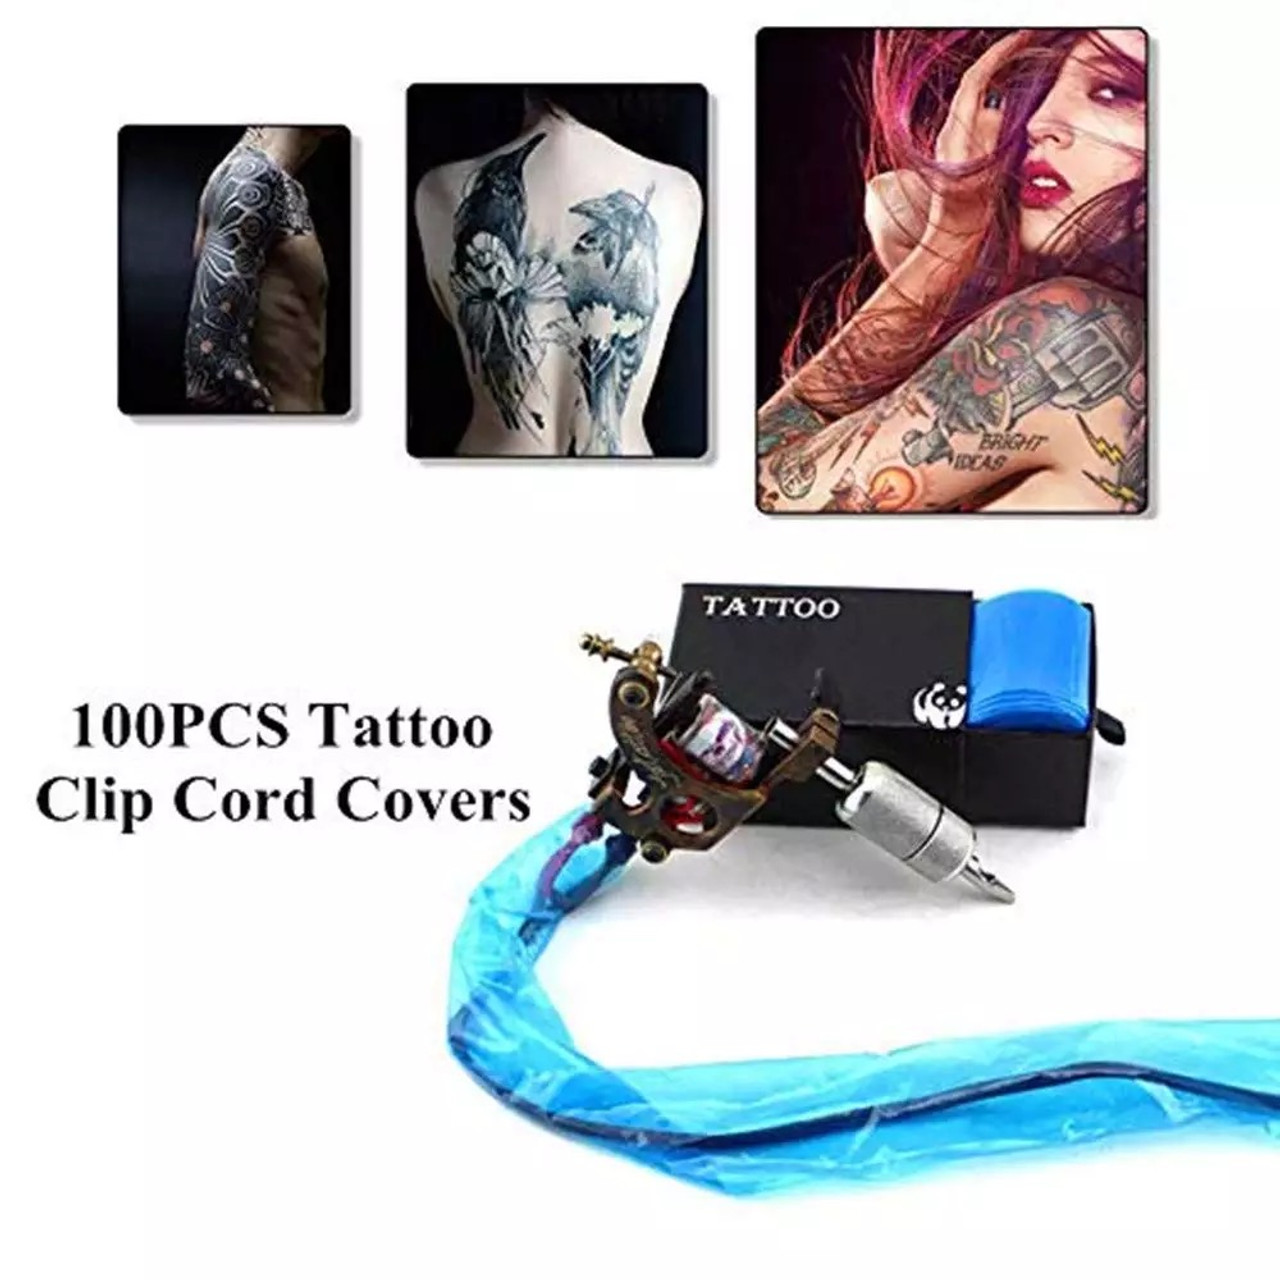 Pro Disposable Hygiene Tattoo Machine Clip Cord Covers Bags Supply Sleeves Disposable Plastic Hygiene Machine Cover 100pcs